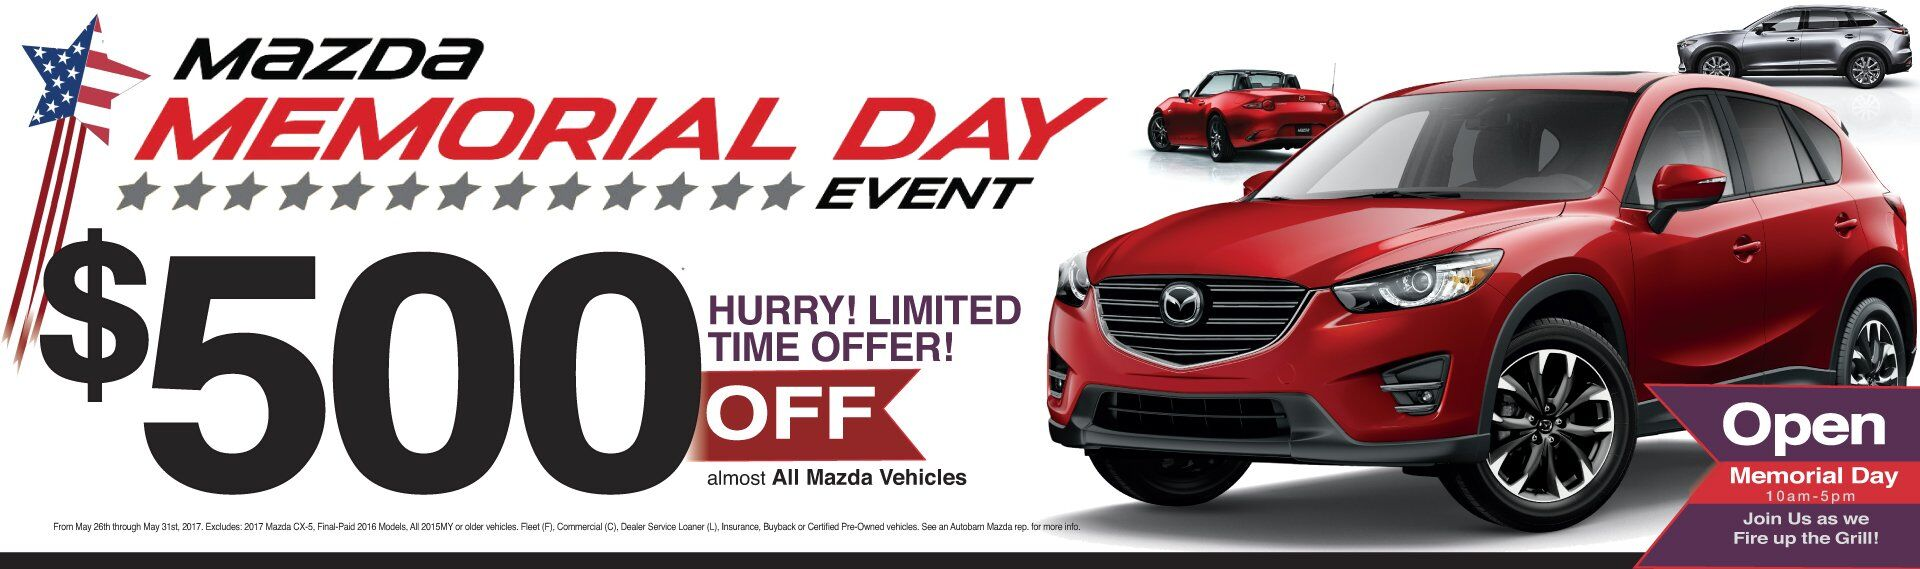 The Autobarn City Mazda Memorial Day Event Now Through Memorial Day